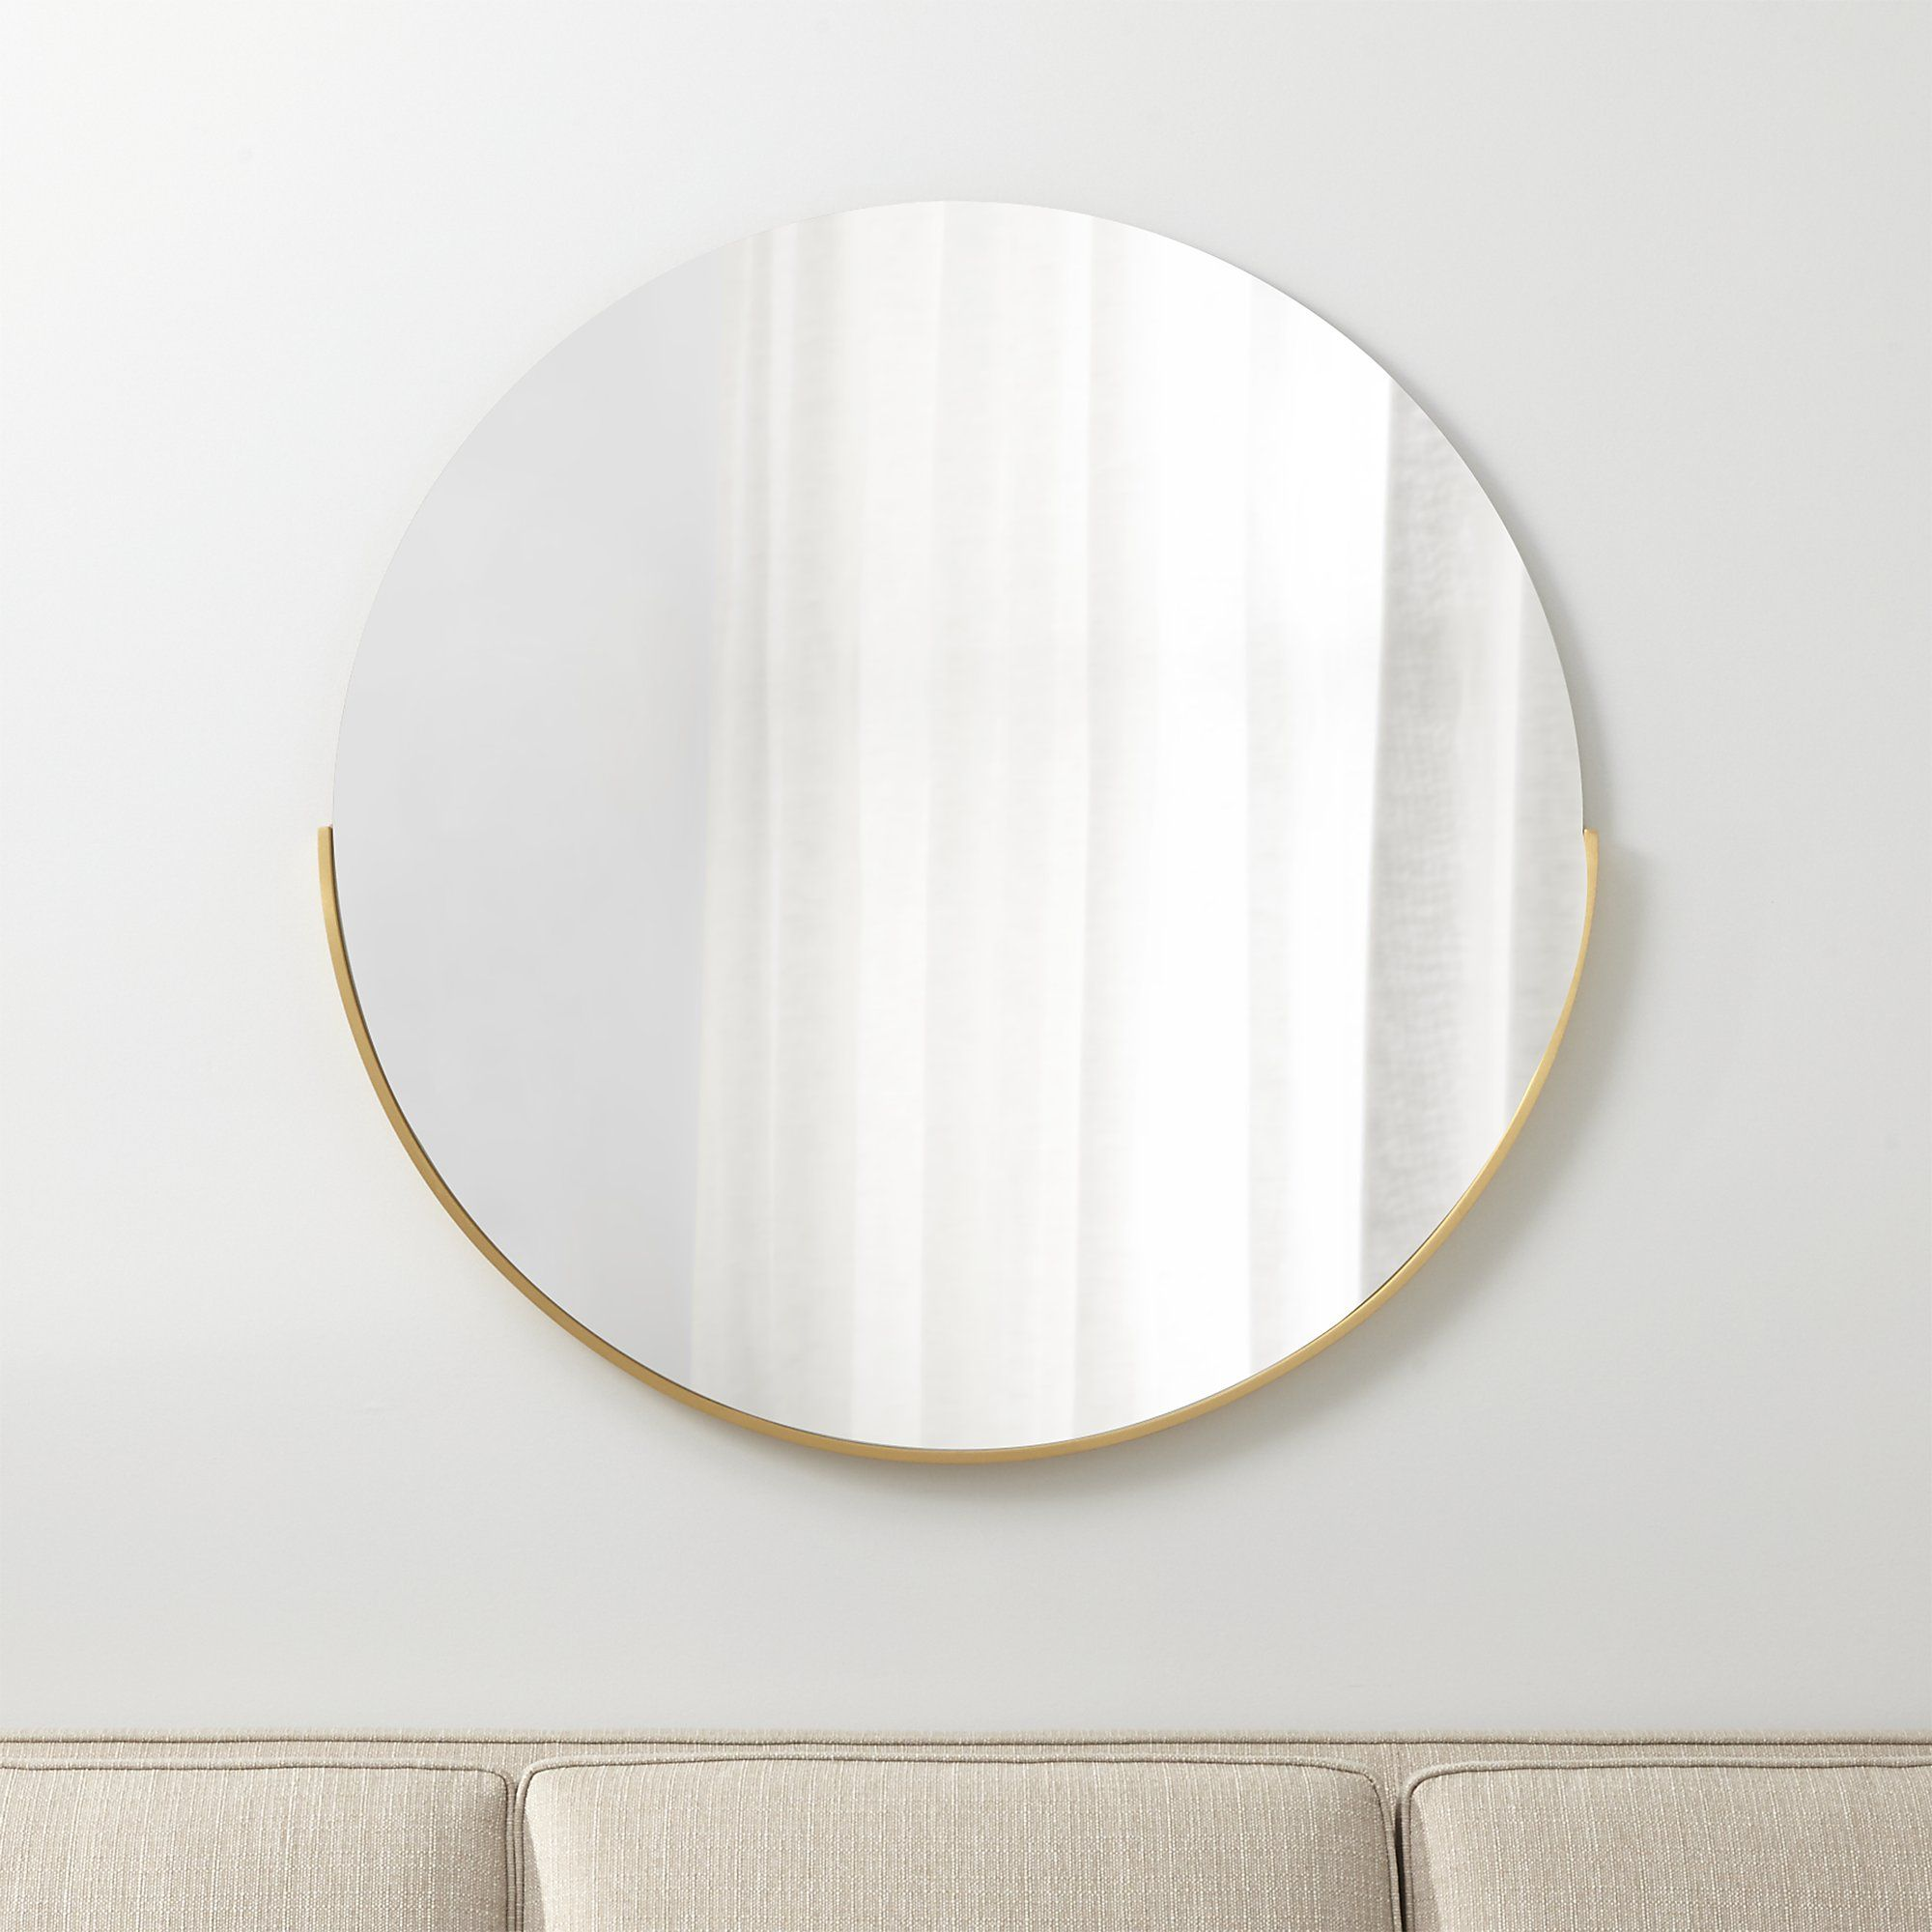 Gerald Large Round Wall Mirror Framed With A Crescent Of Soft Gold Our Statement Making Scales Up The Clean Geometry